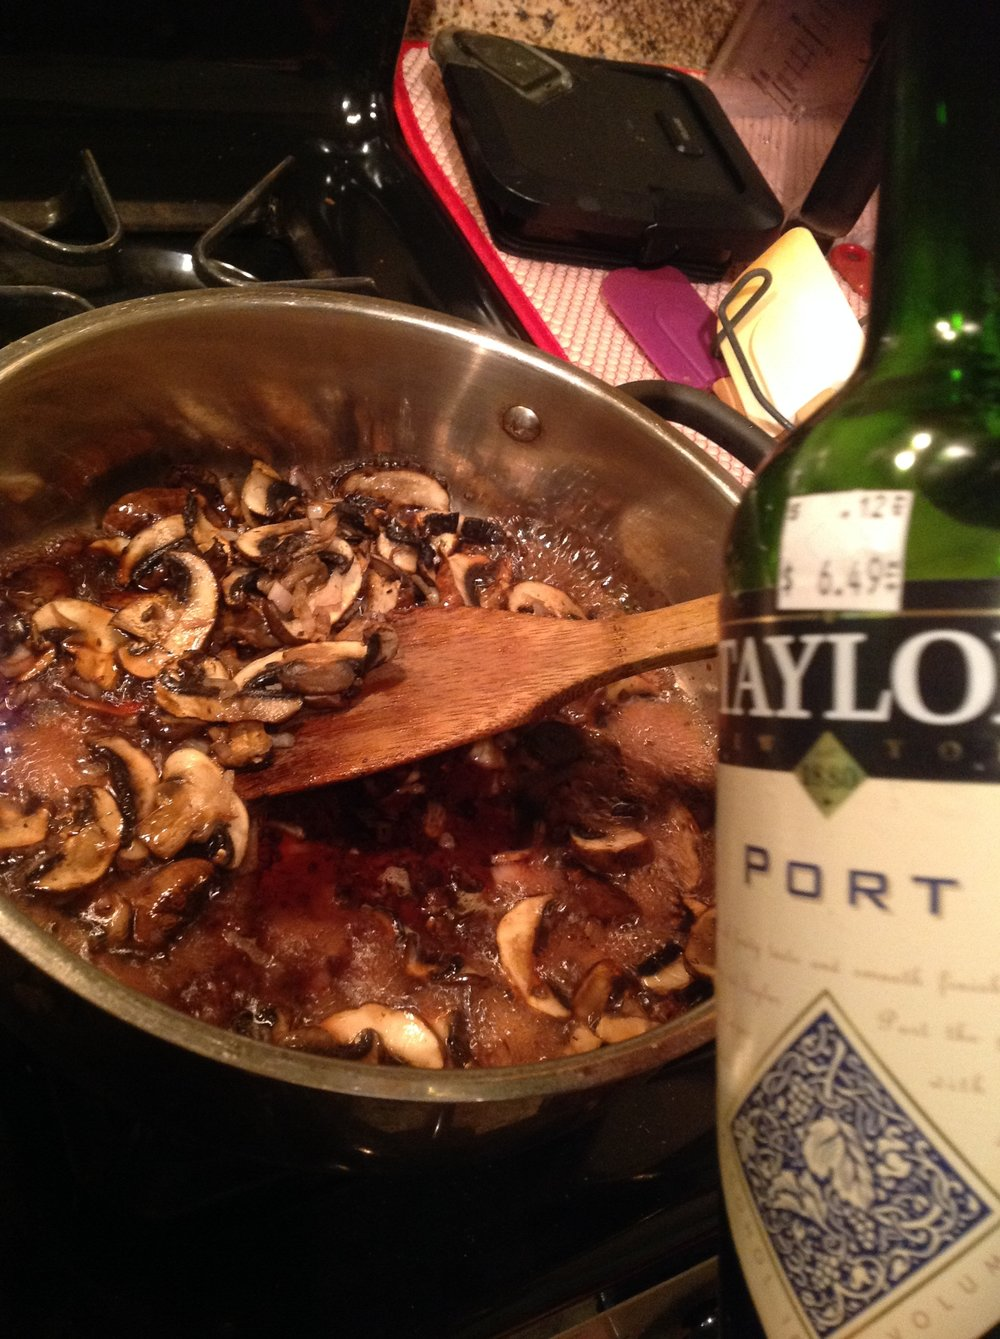 Chef's Tip - Adding Port Wine to Mushroom Gravy Adds a Layer of Sweetness to Balance the Flavor